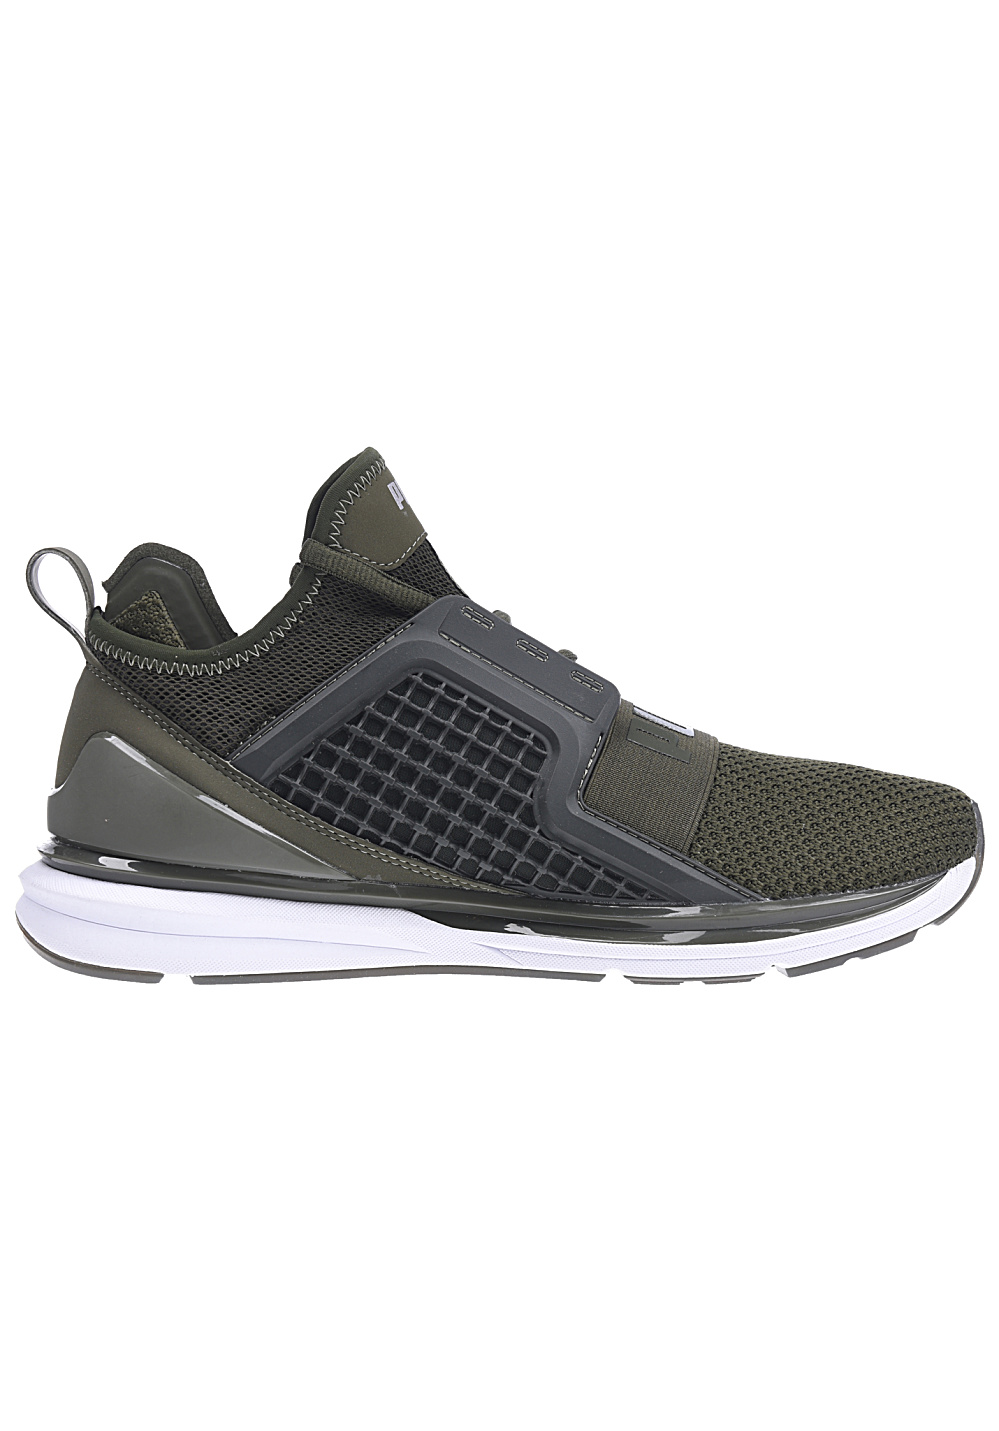 watch a882c 53be9 Puma Ignite Limitless Weave - Sneakers for Men - Green